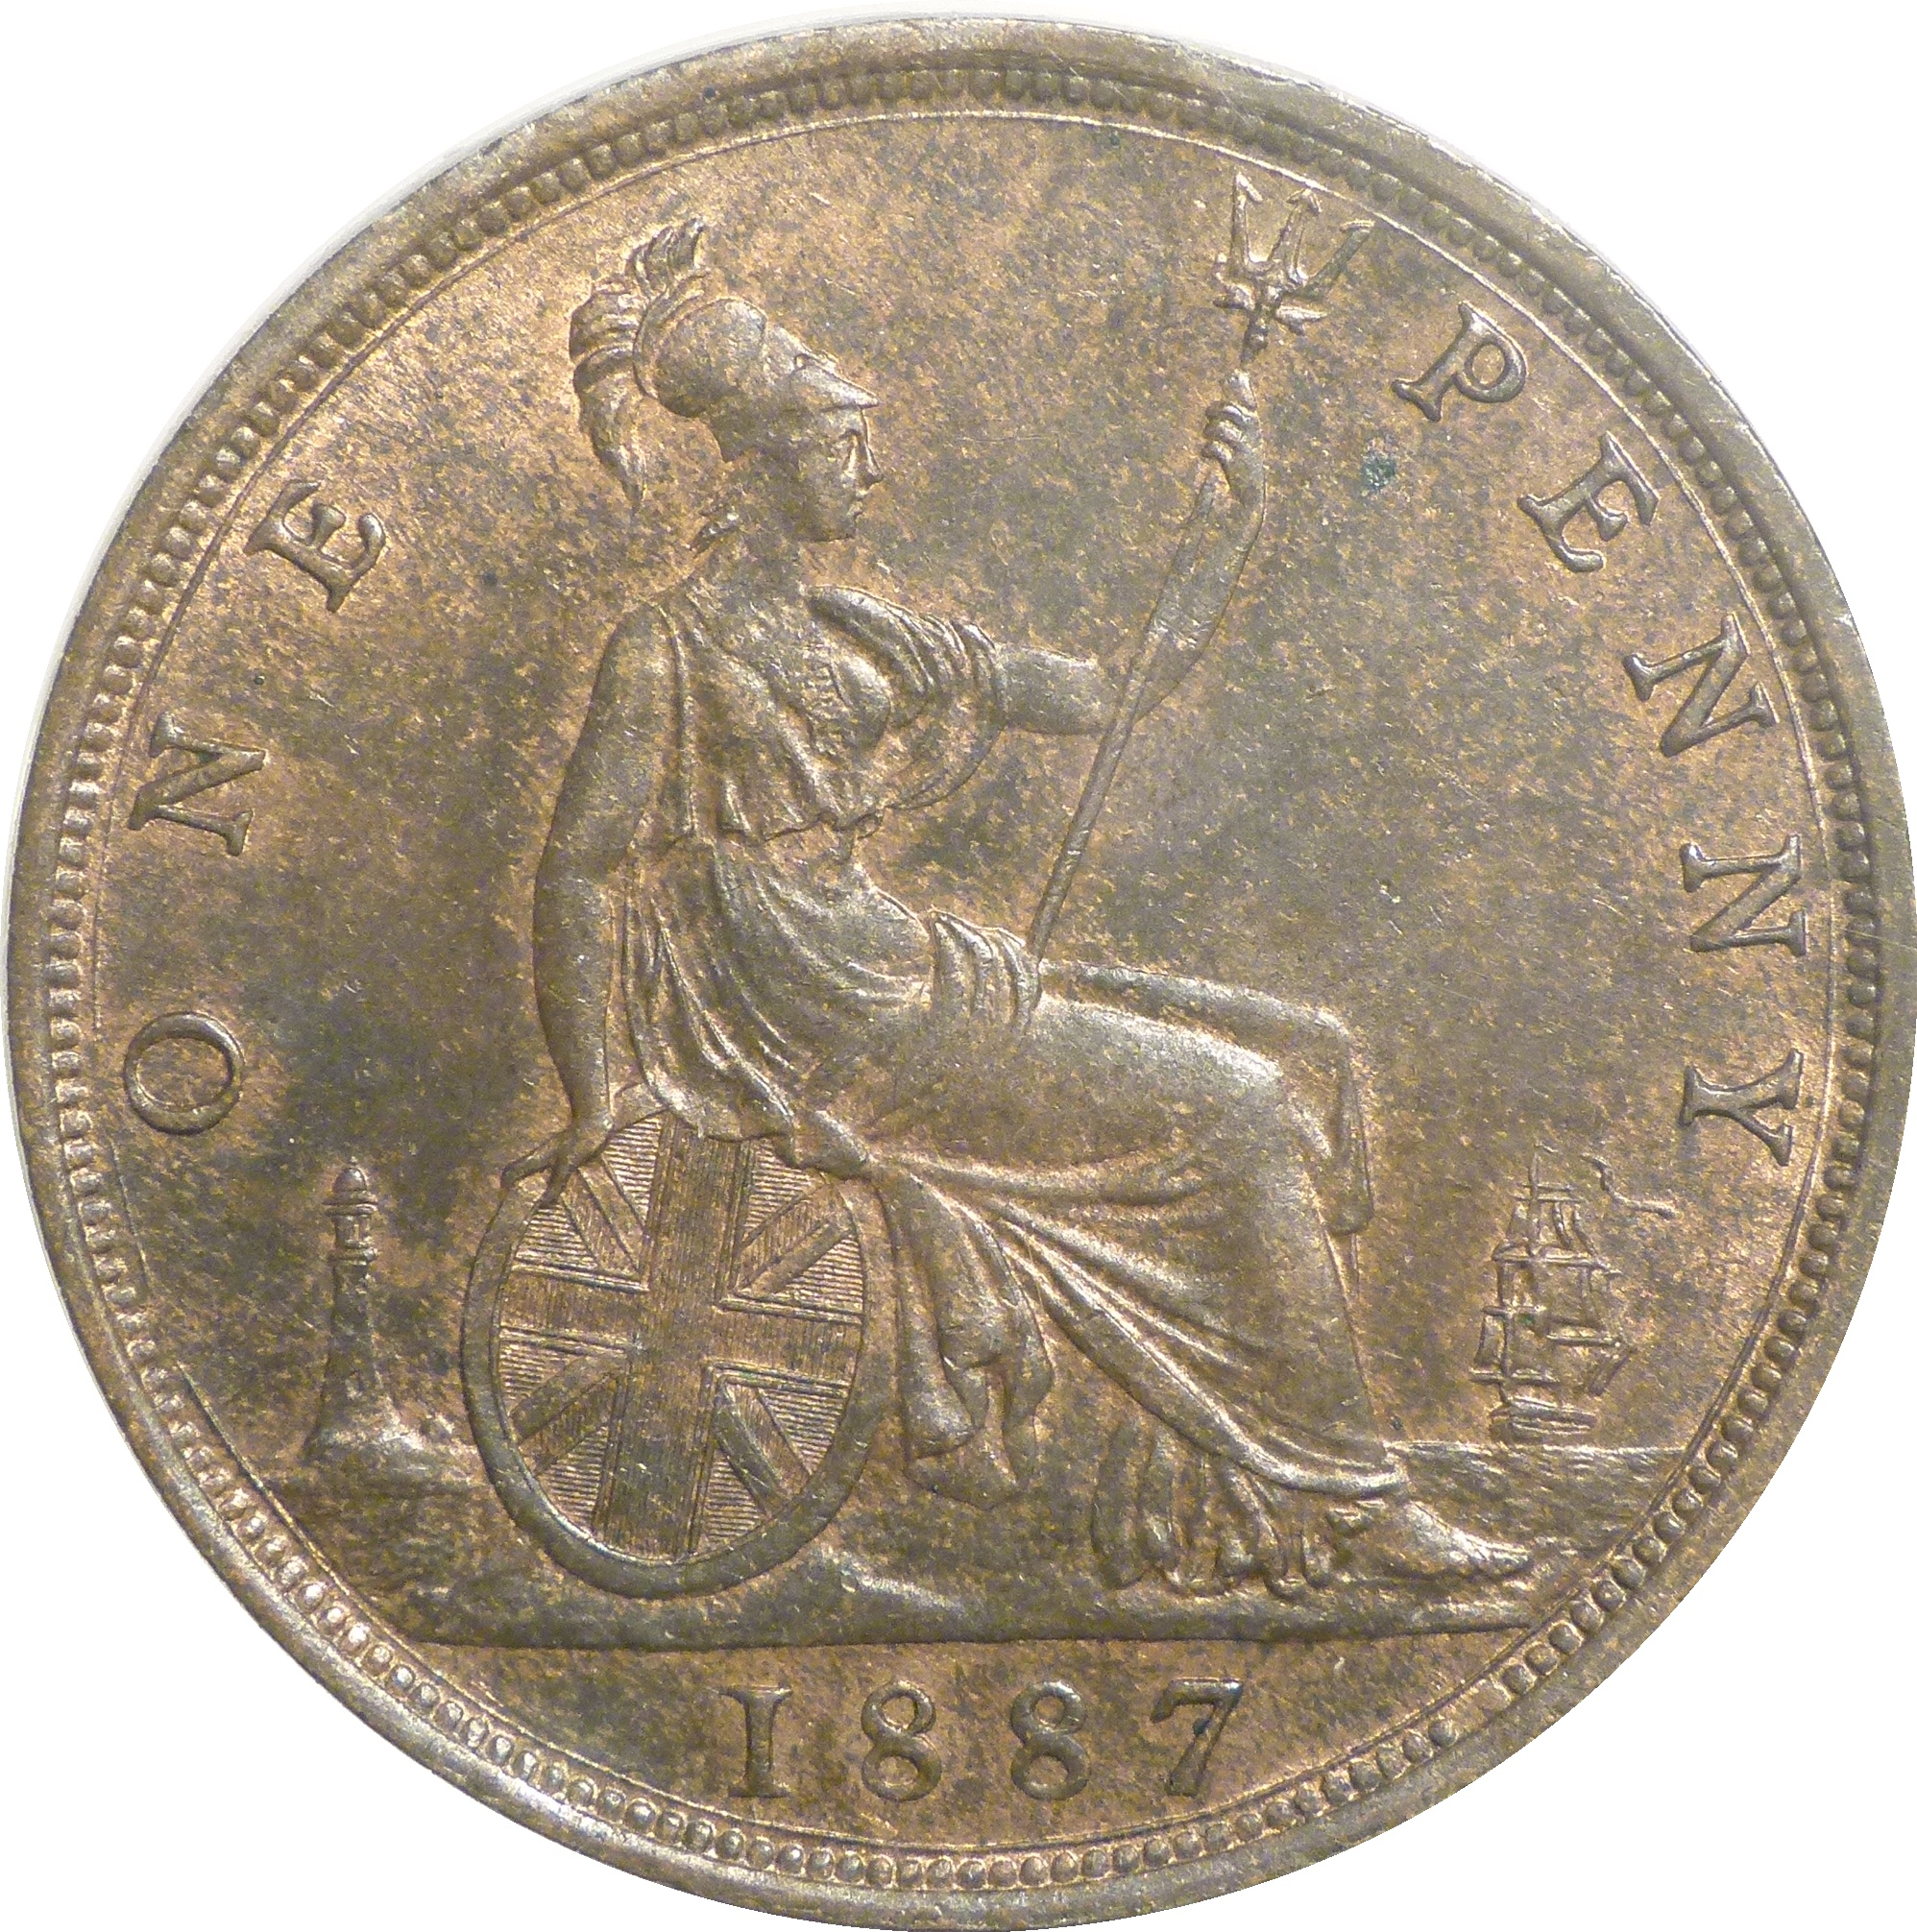 1887 Penny, UNC or near so, CGS 75(MS 62-63), Victoria, Freeman 125, UIN 40472